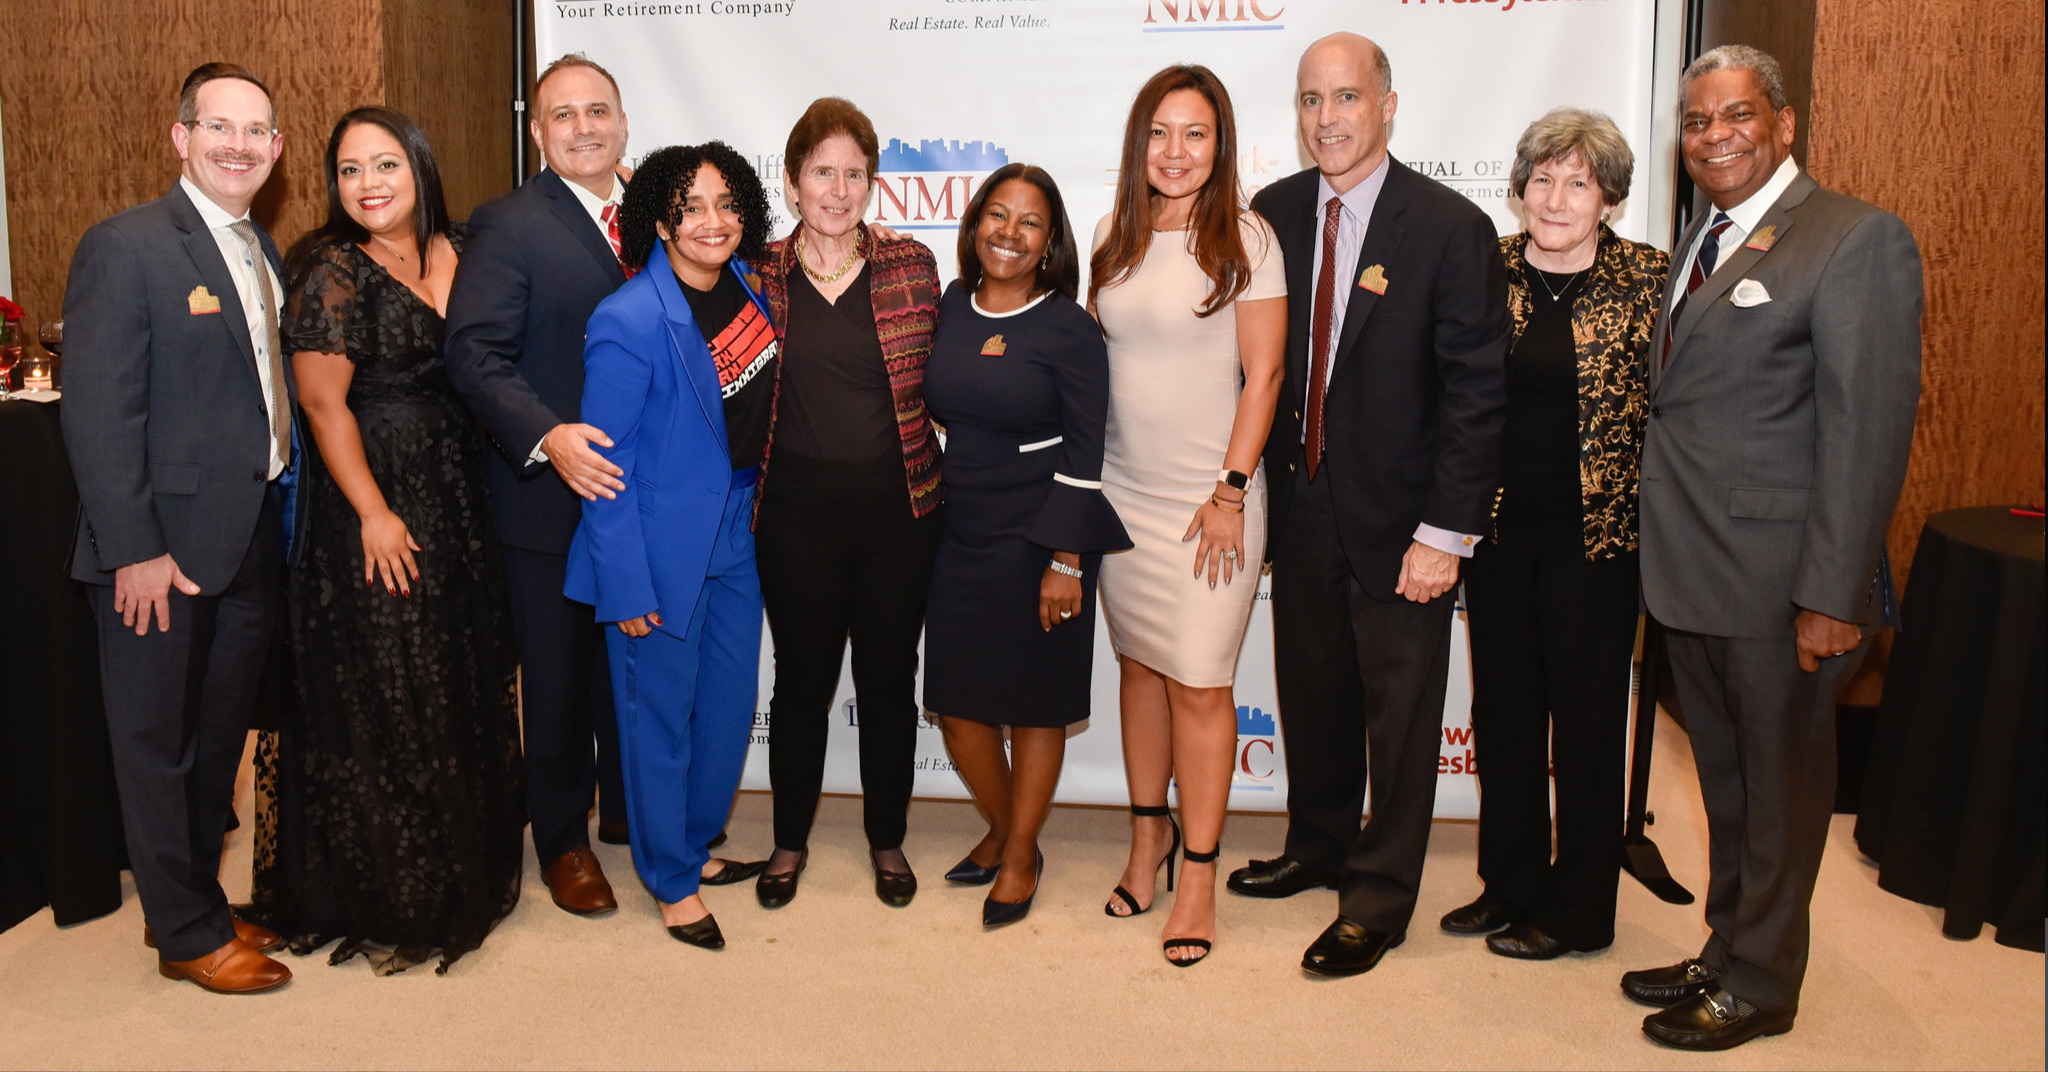 A photo of NMIC's board of directors with ED, Maria Lizardo.